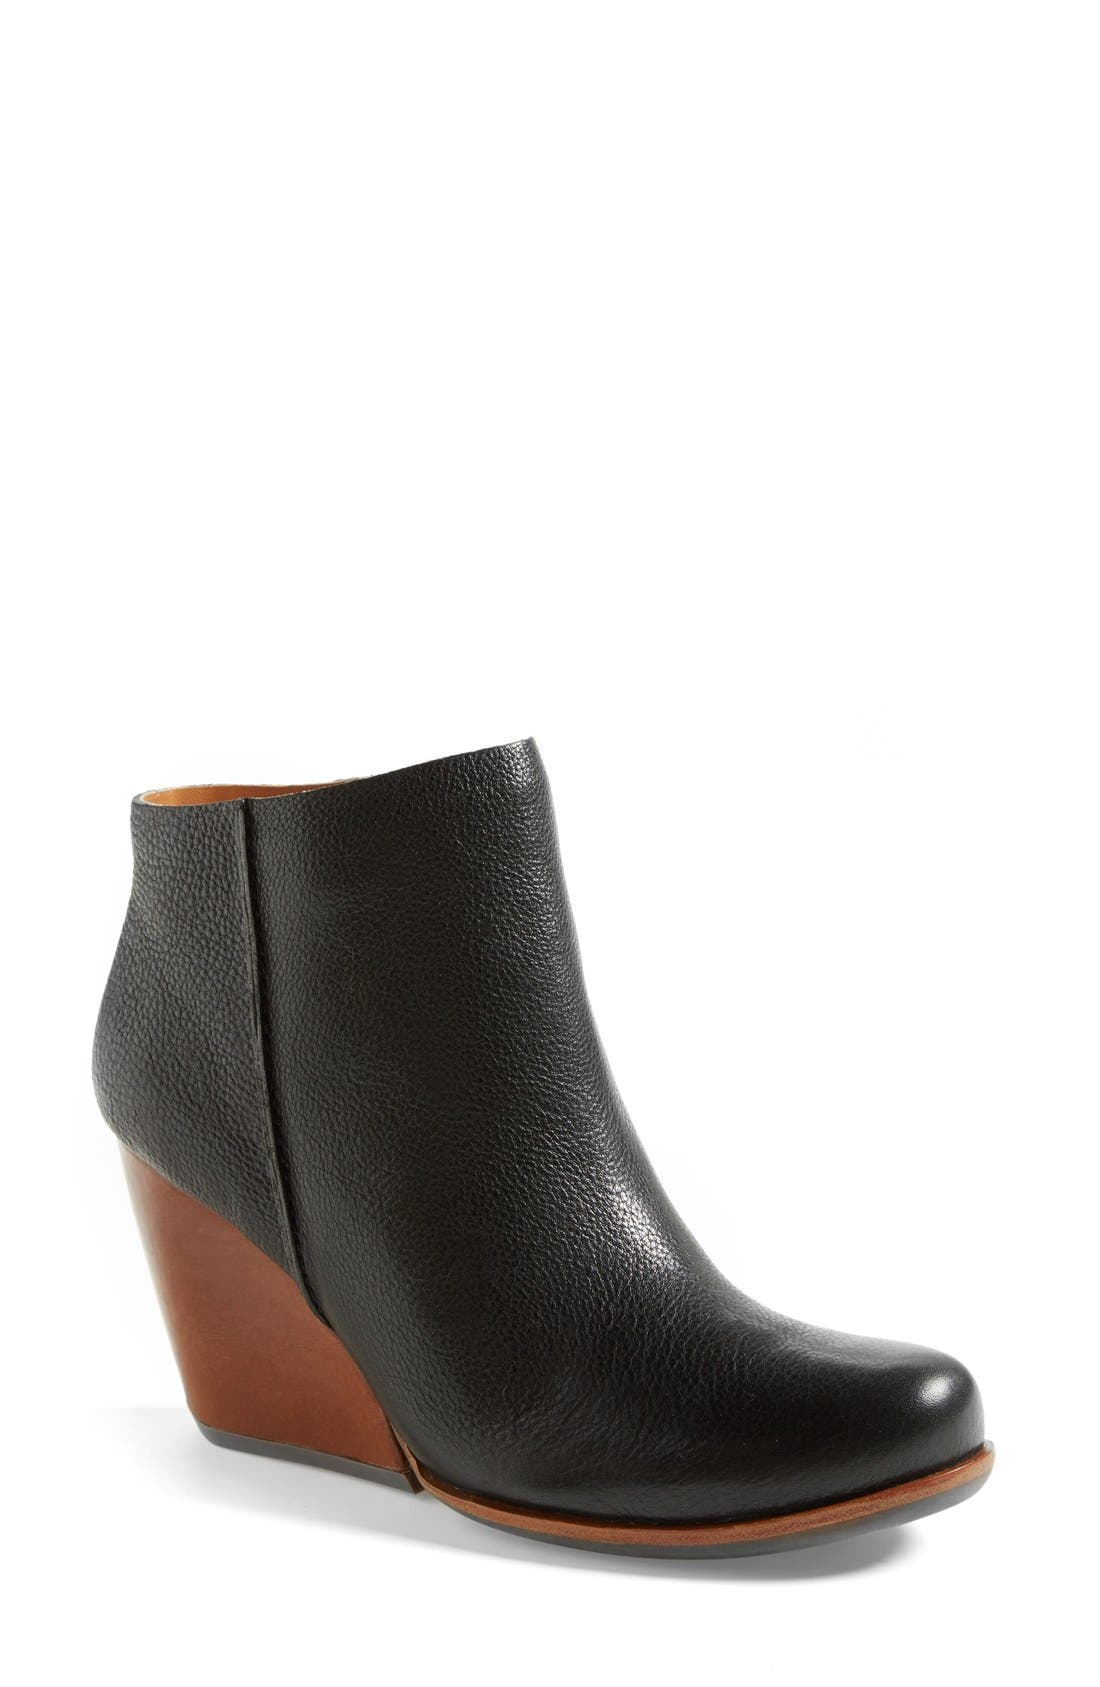 'Natalya' Burnished Leather Demi Wedge Boot,                             Main thumbnail 1, color,                             001